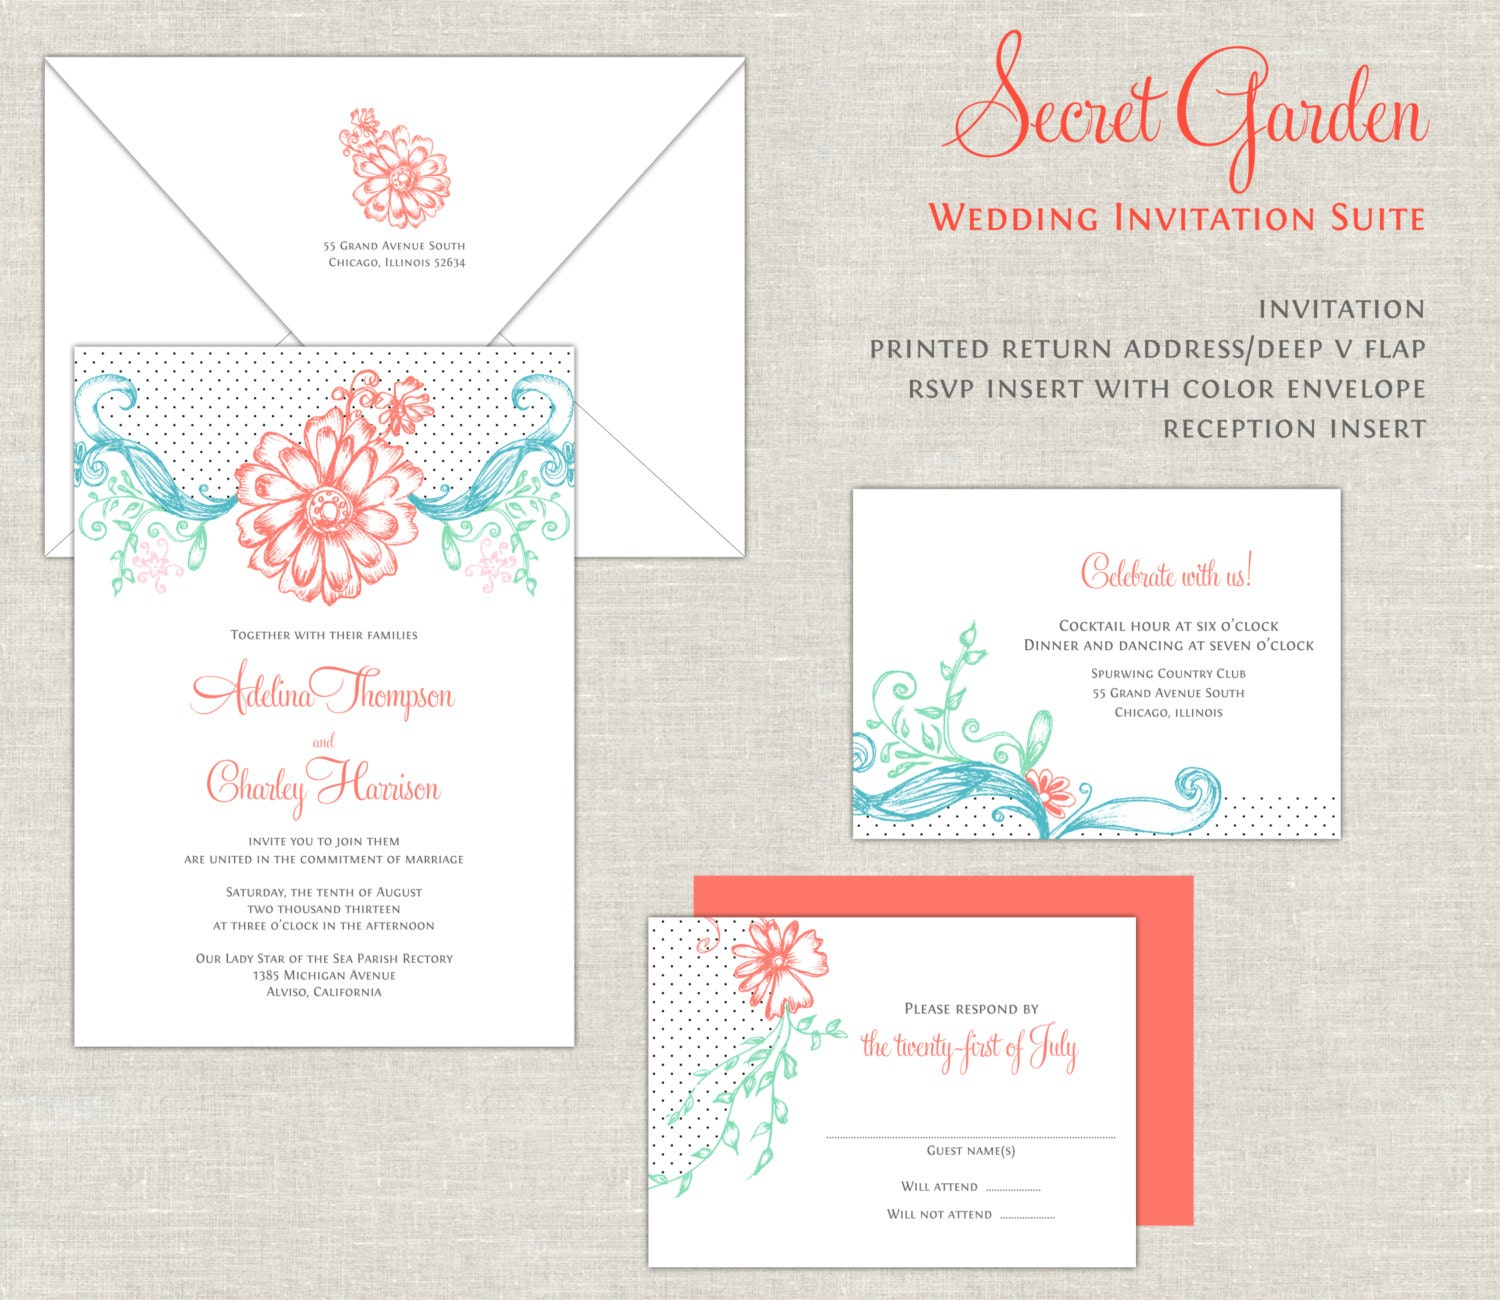 Coral & Turquoise Wedding Invitations Garden Wedding